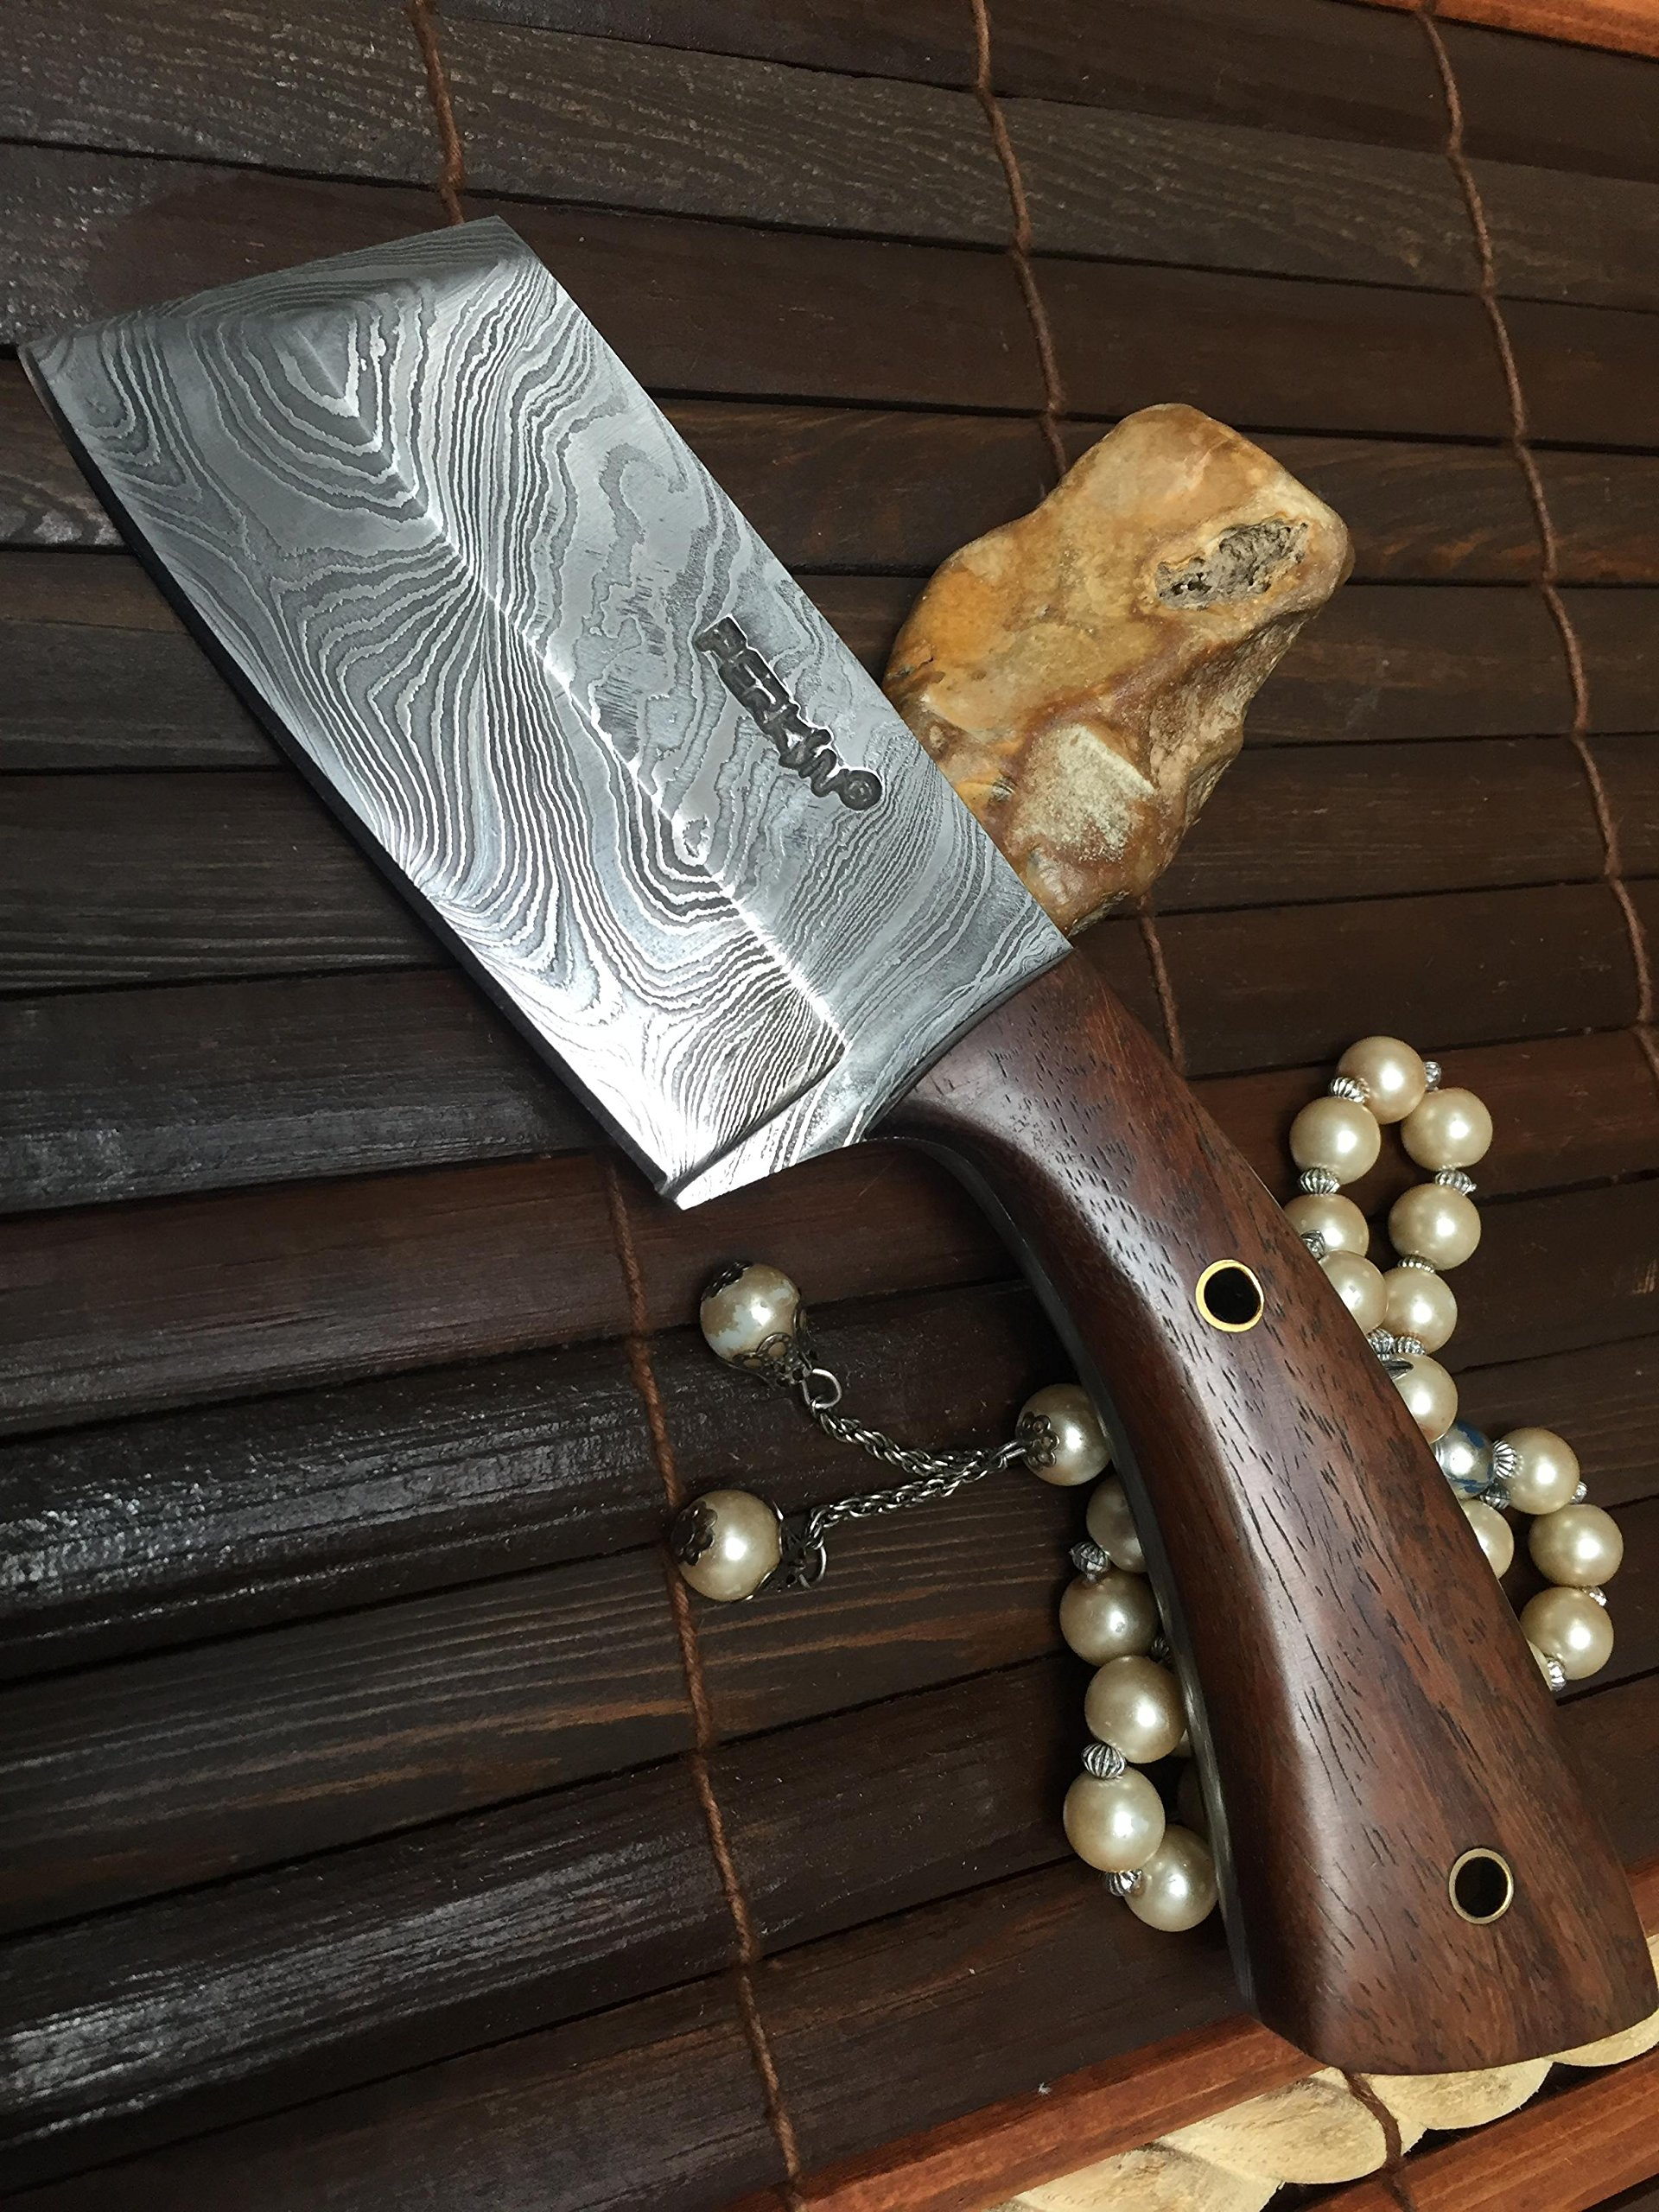 Damascus Steel Hunting Knife Damascus Chef Knife with Sheath by Perkin (Image #1)